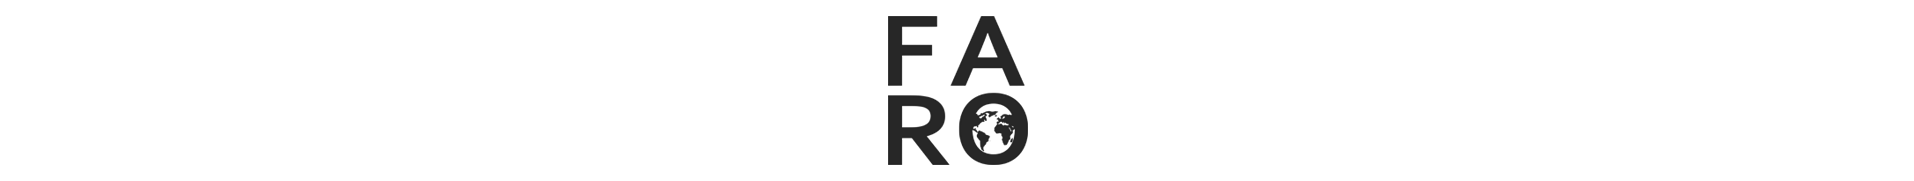 FARO.design header image containing the logo for web.